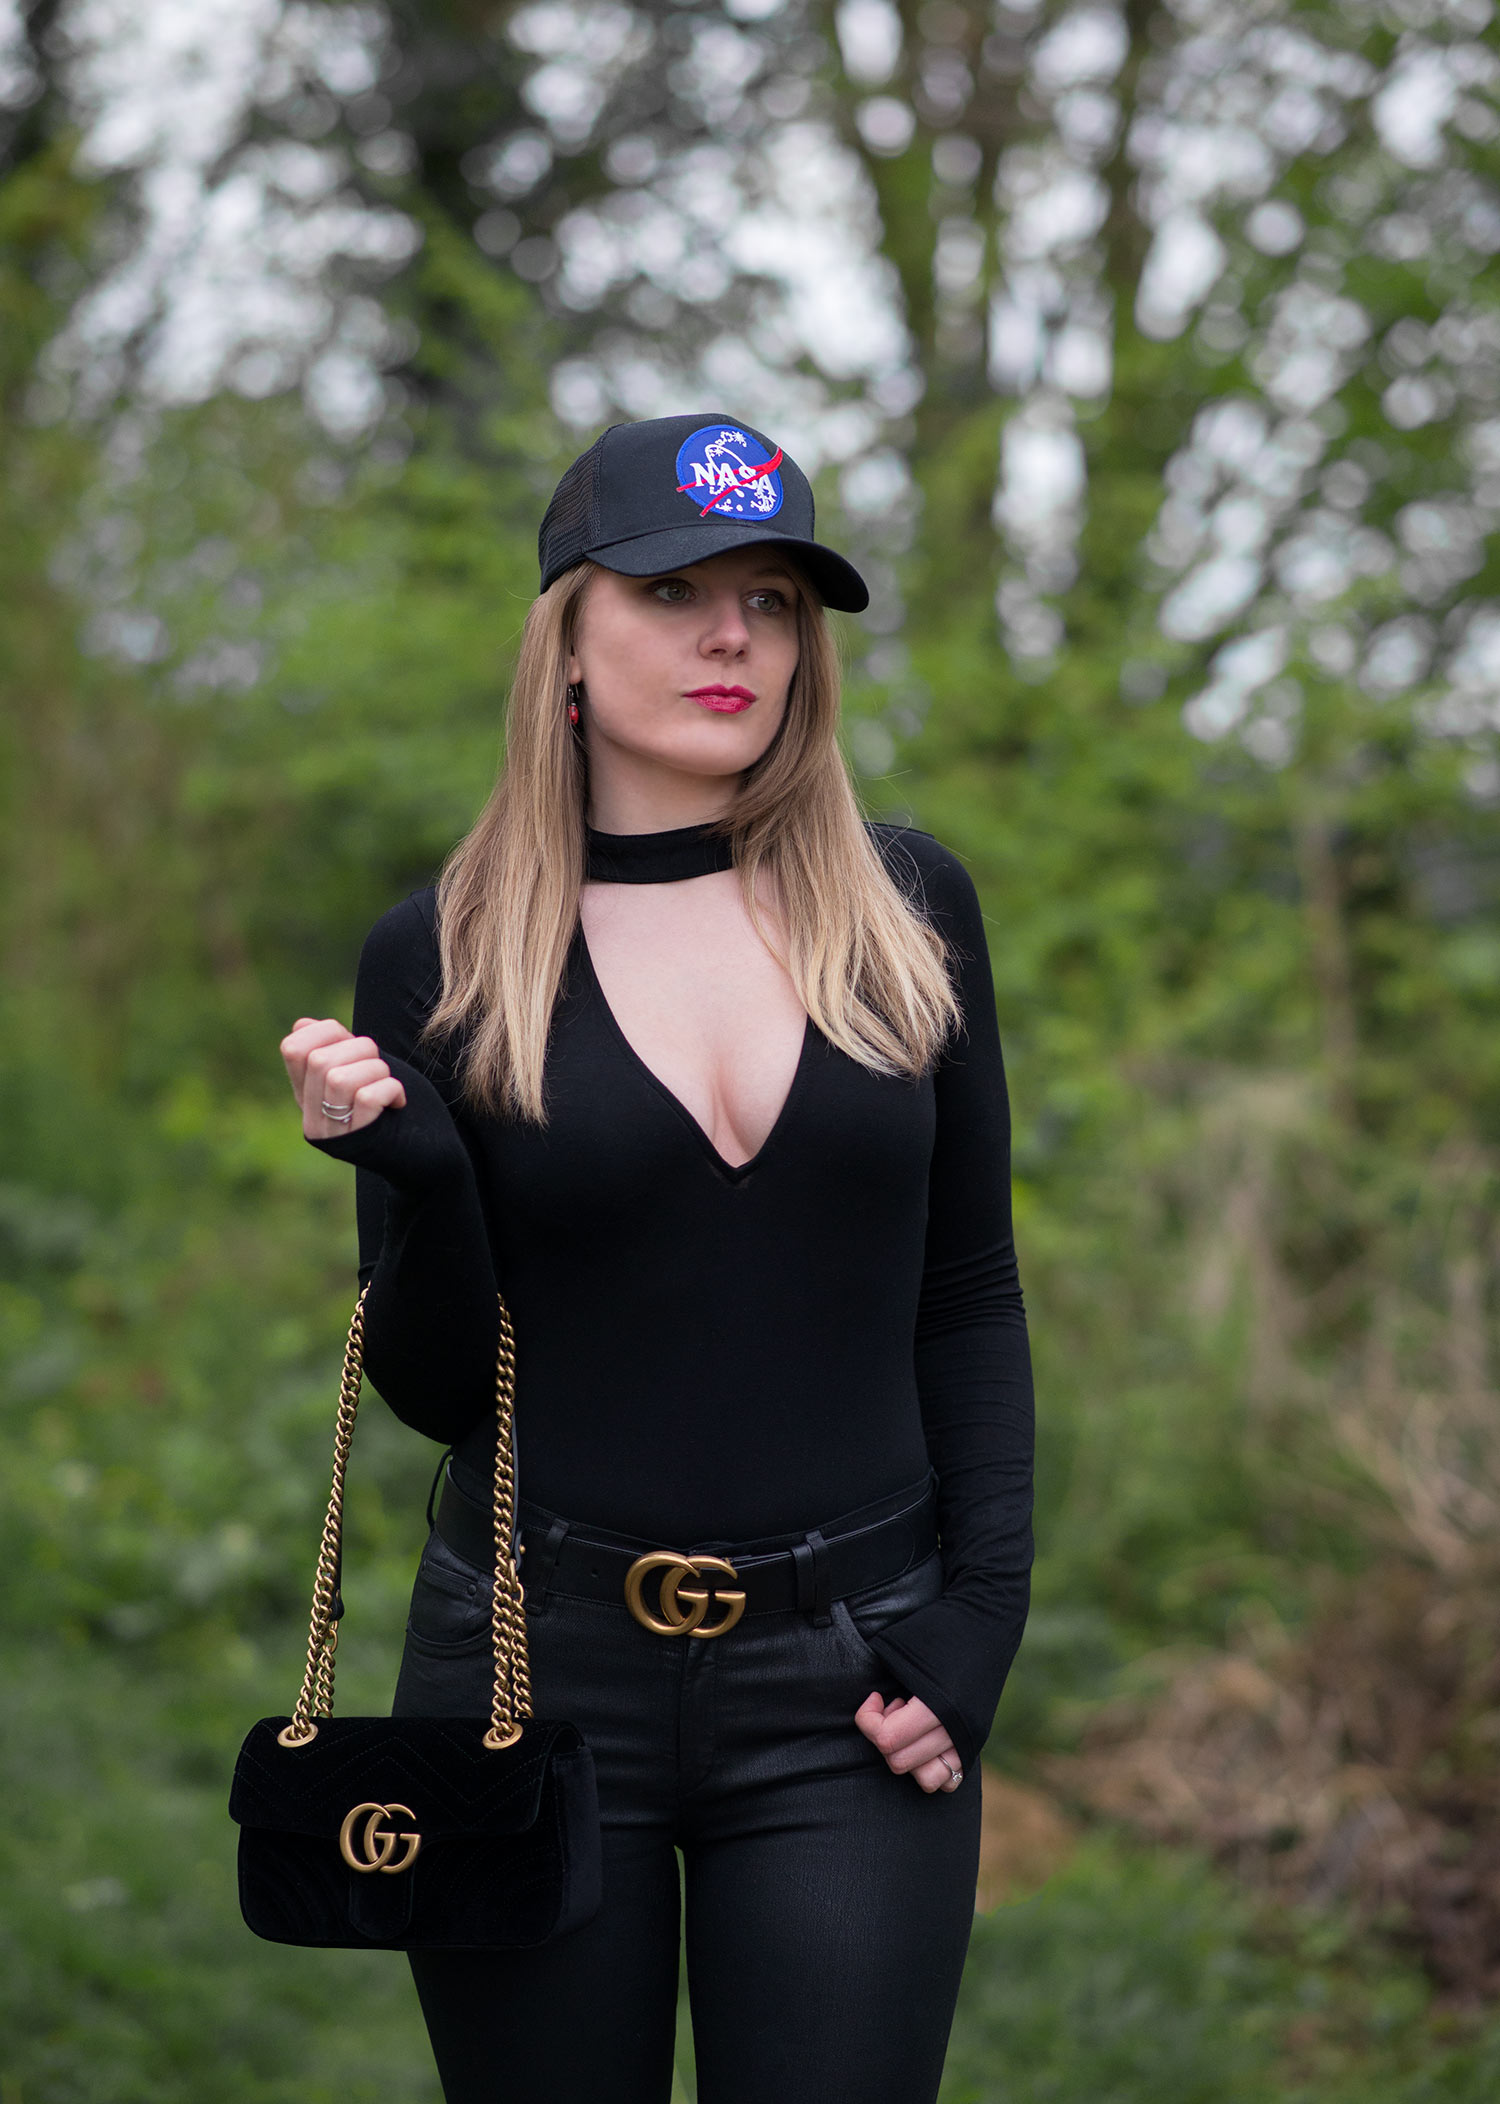 Styling A Nasa Cap With Gucci Accessories  1d6ce07e5f4